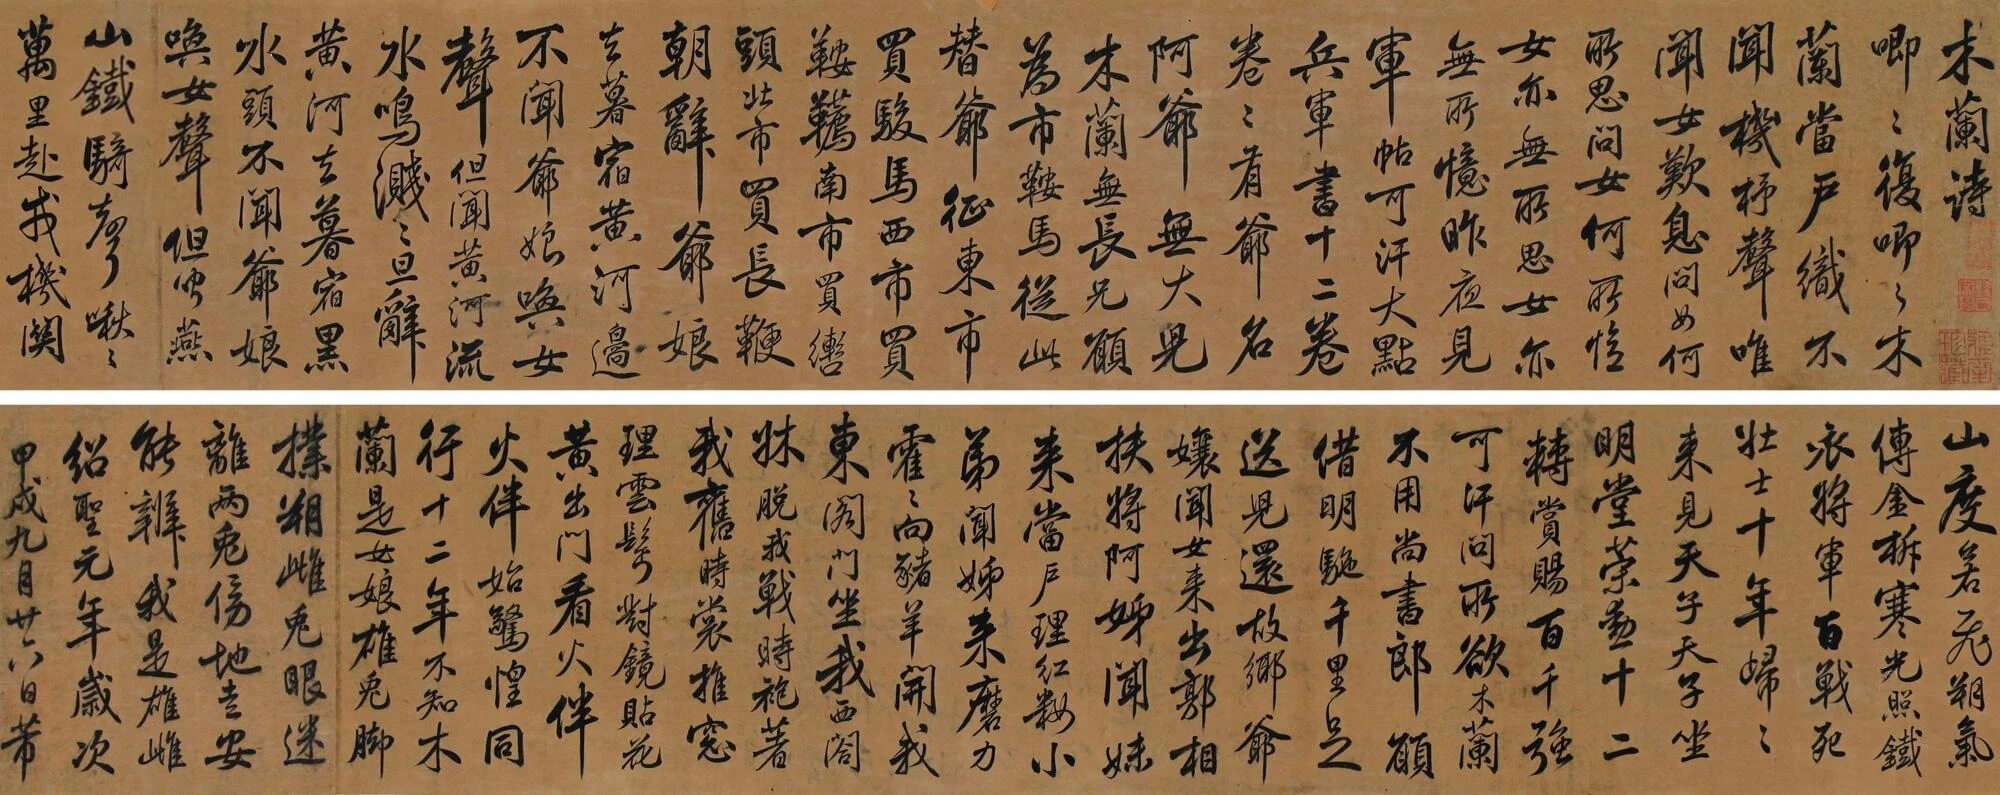 This copy of The Ballad of Mulan was written by Song dynasty calligrapher Mi Fu in 1094 AD (Public domain).